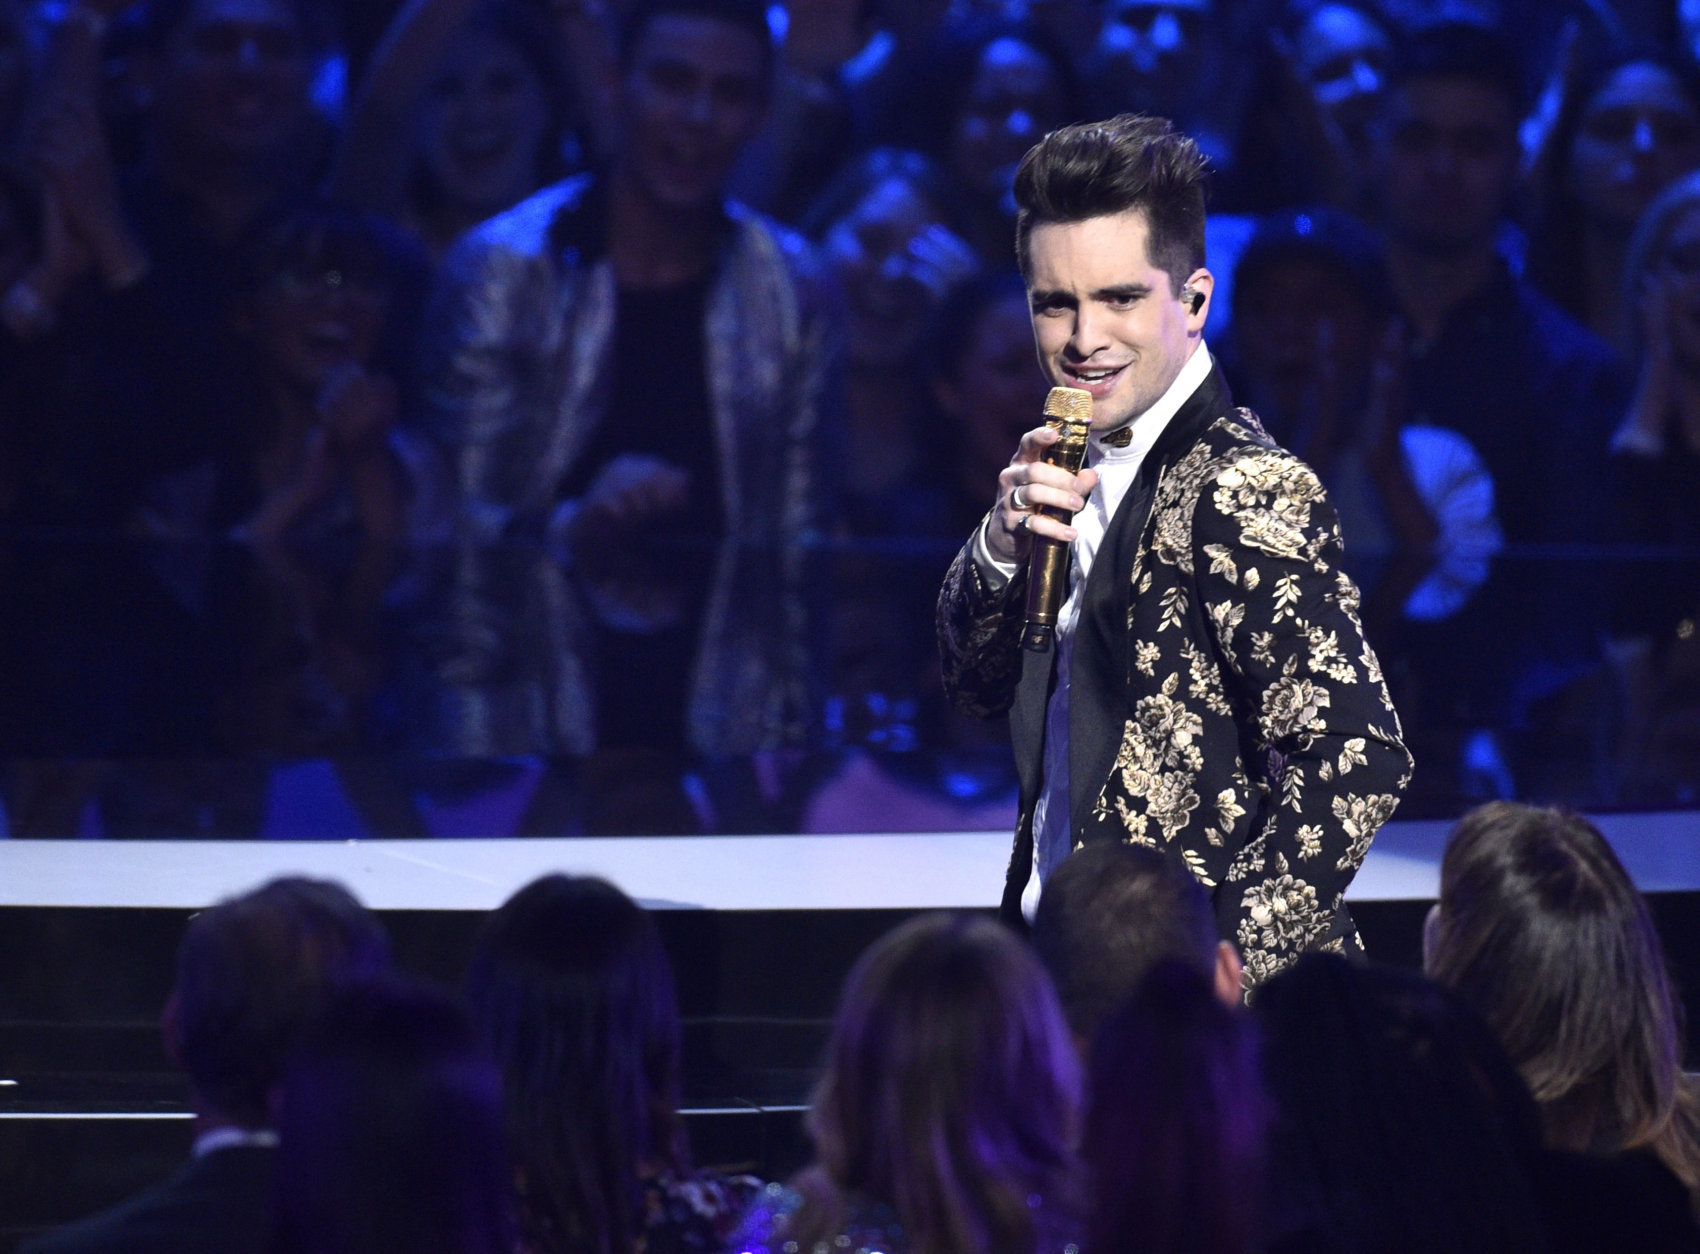 Brendon Urie of Panic! At the Disco performs at the MTV Video Music Awards at Radio City Music Hall on Monday, Aug. 20, 2018, in New York. (Photo by Chris Pizzello/Invision/AP)